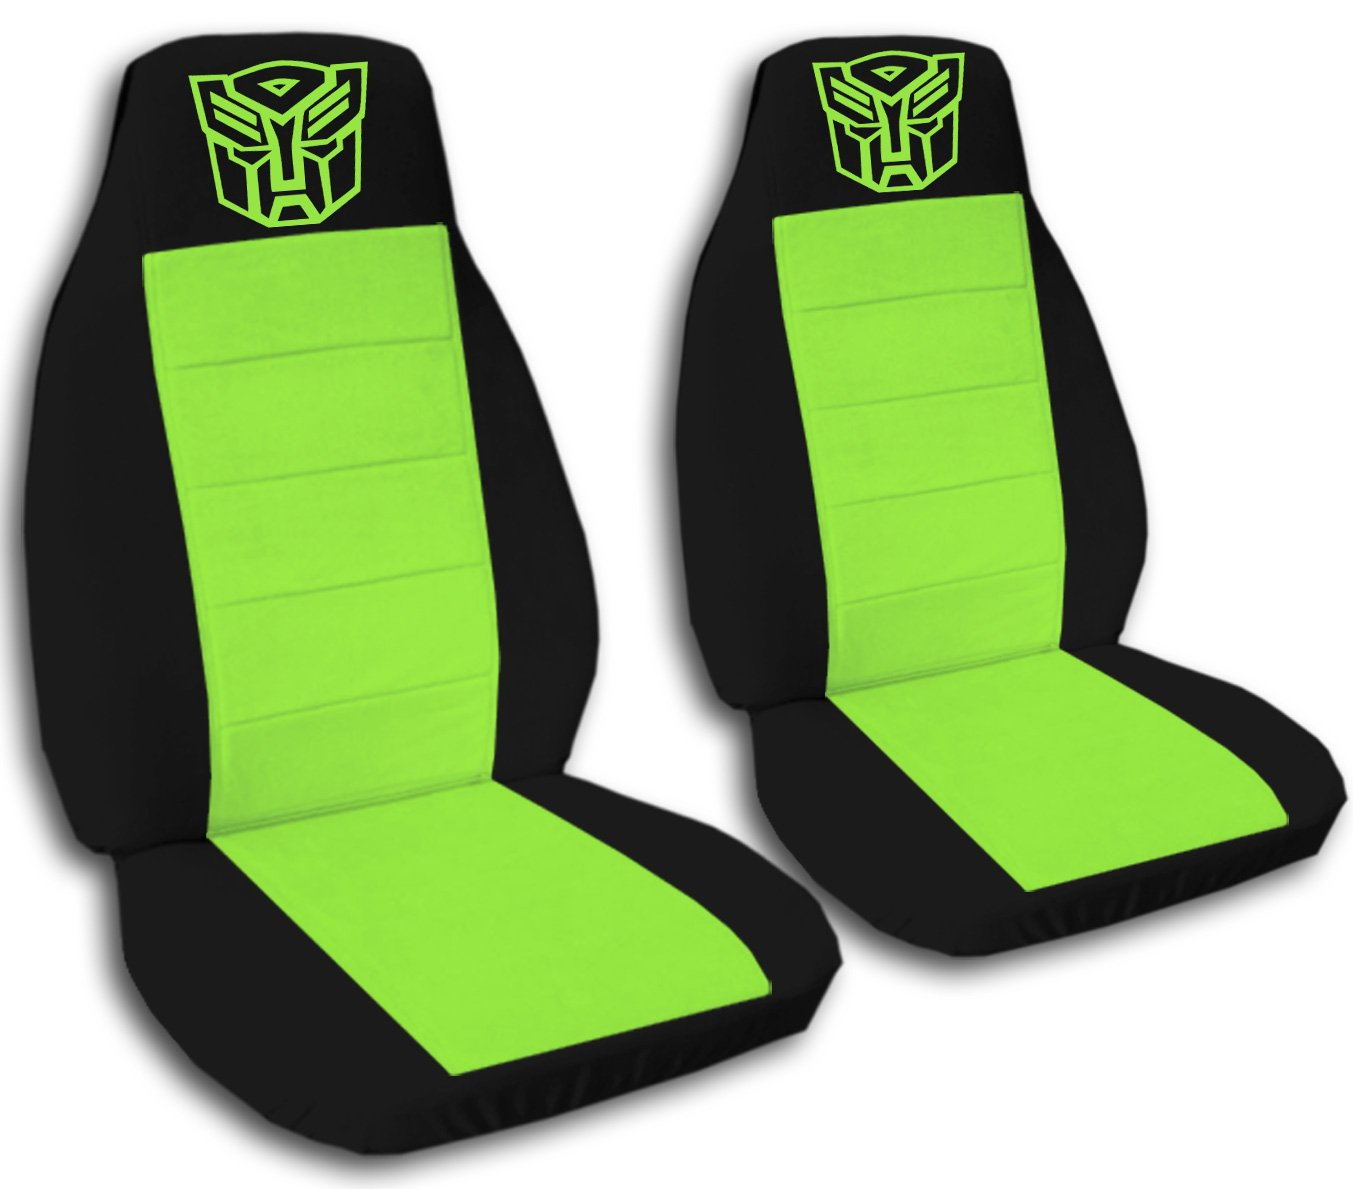 2 Black and Lime Green Robot seat covers for a 2005 to 2010 Jeep Grand Cherokee. full professional makeup kit set makeup brushes tools powder foundation blush eye shadow blending beauty make up brush 18 15pcs